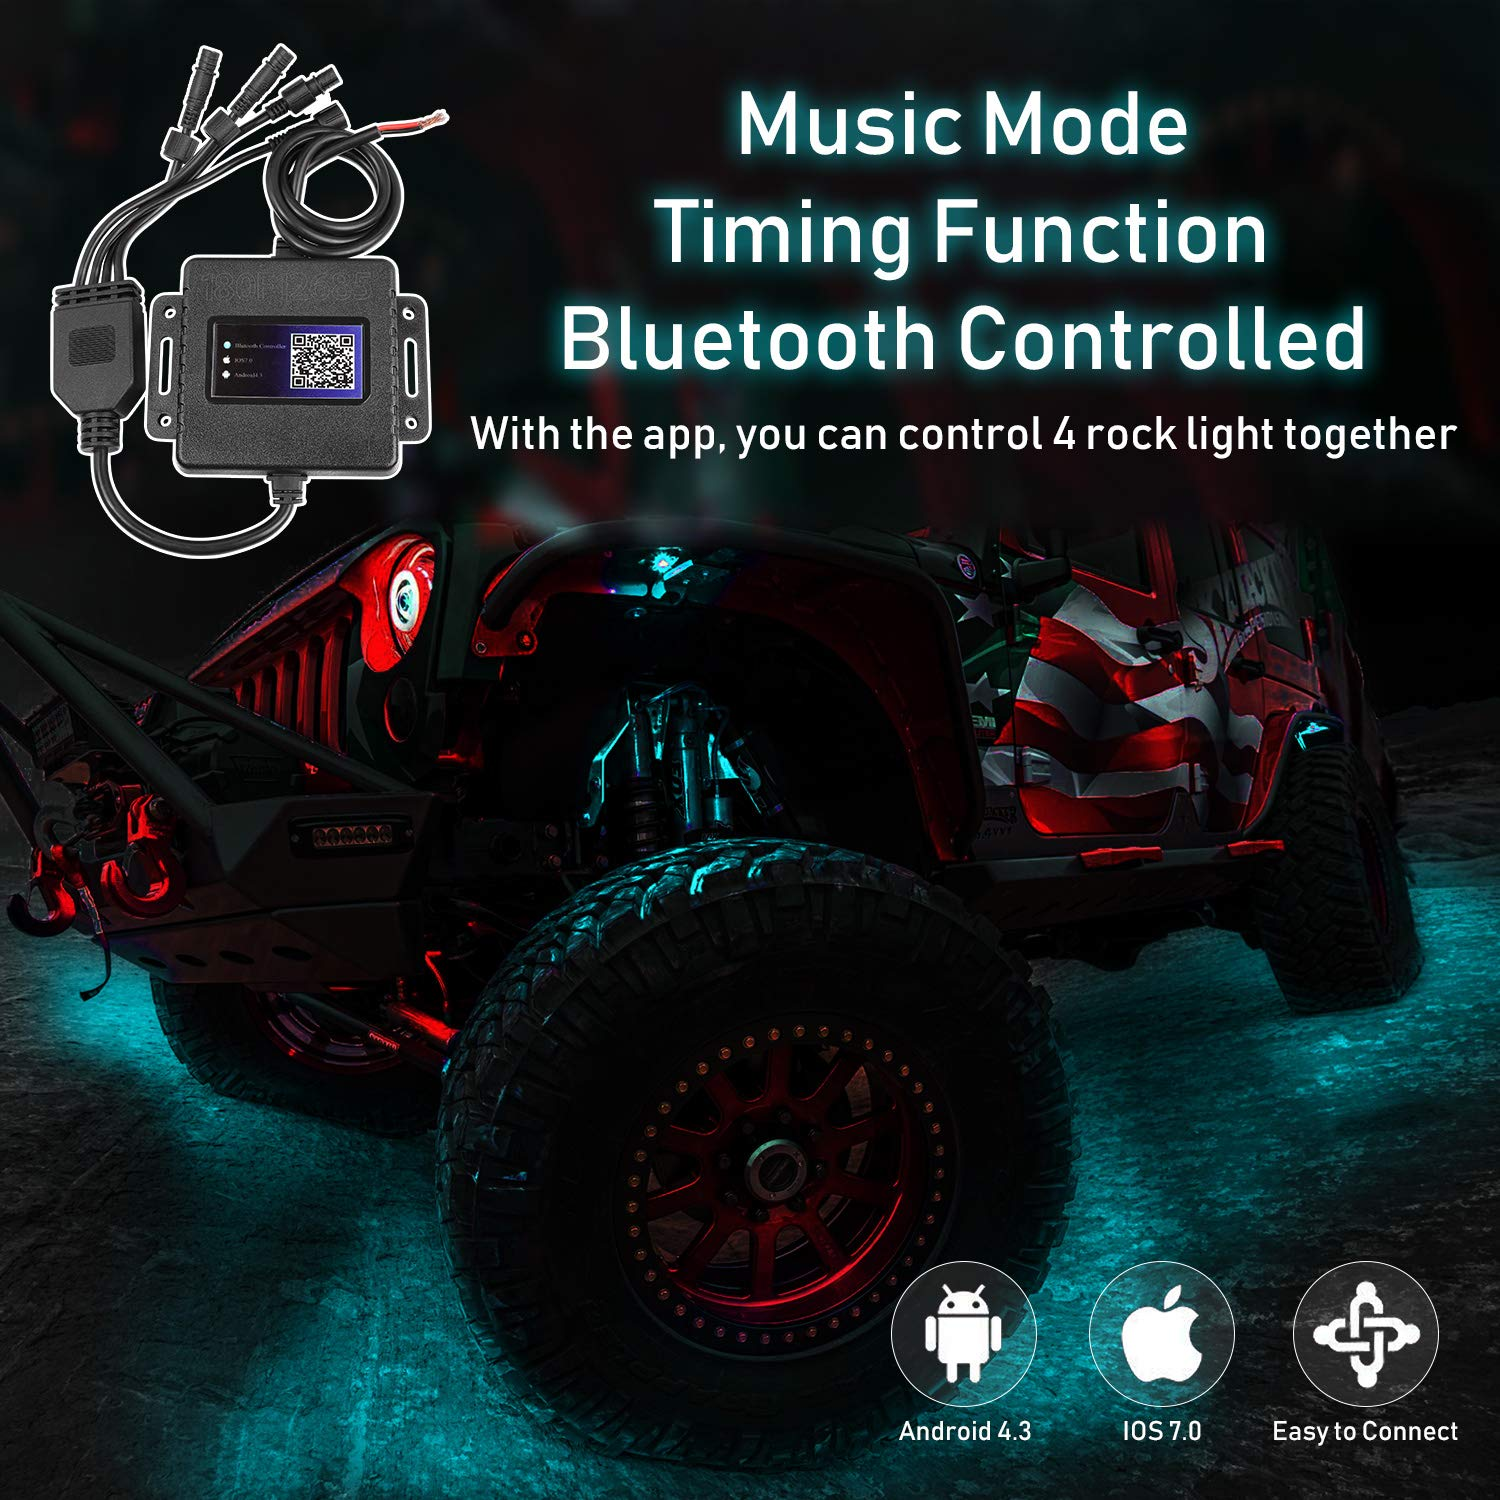 Yvoone-Auto RGB LED Rock Lights Kit 4 Pods Rock Lights with Phone App Control /& Bluetooth Control Music Mode for Underglow Off Road Truck JEEP SUV UTV ATV Boat Motorcycle Timing Flashing